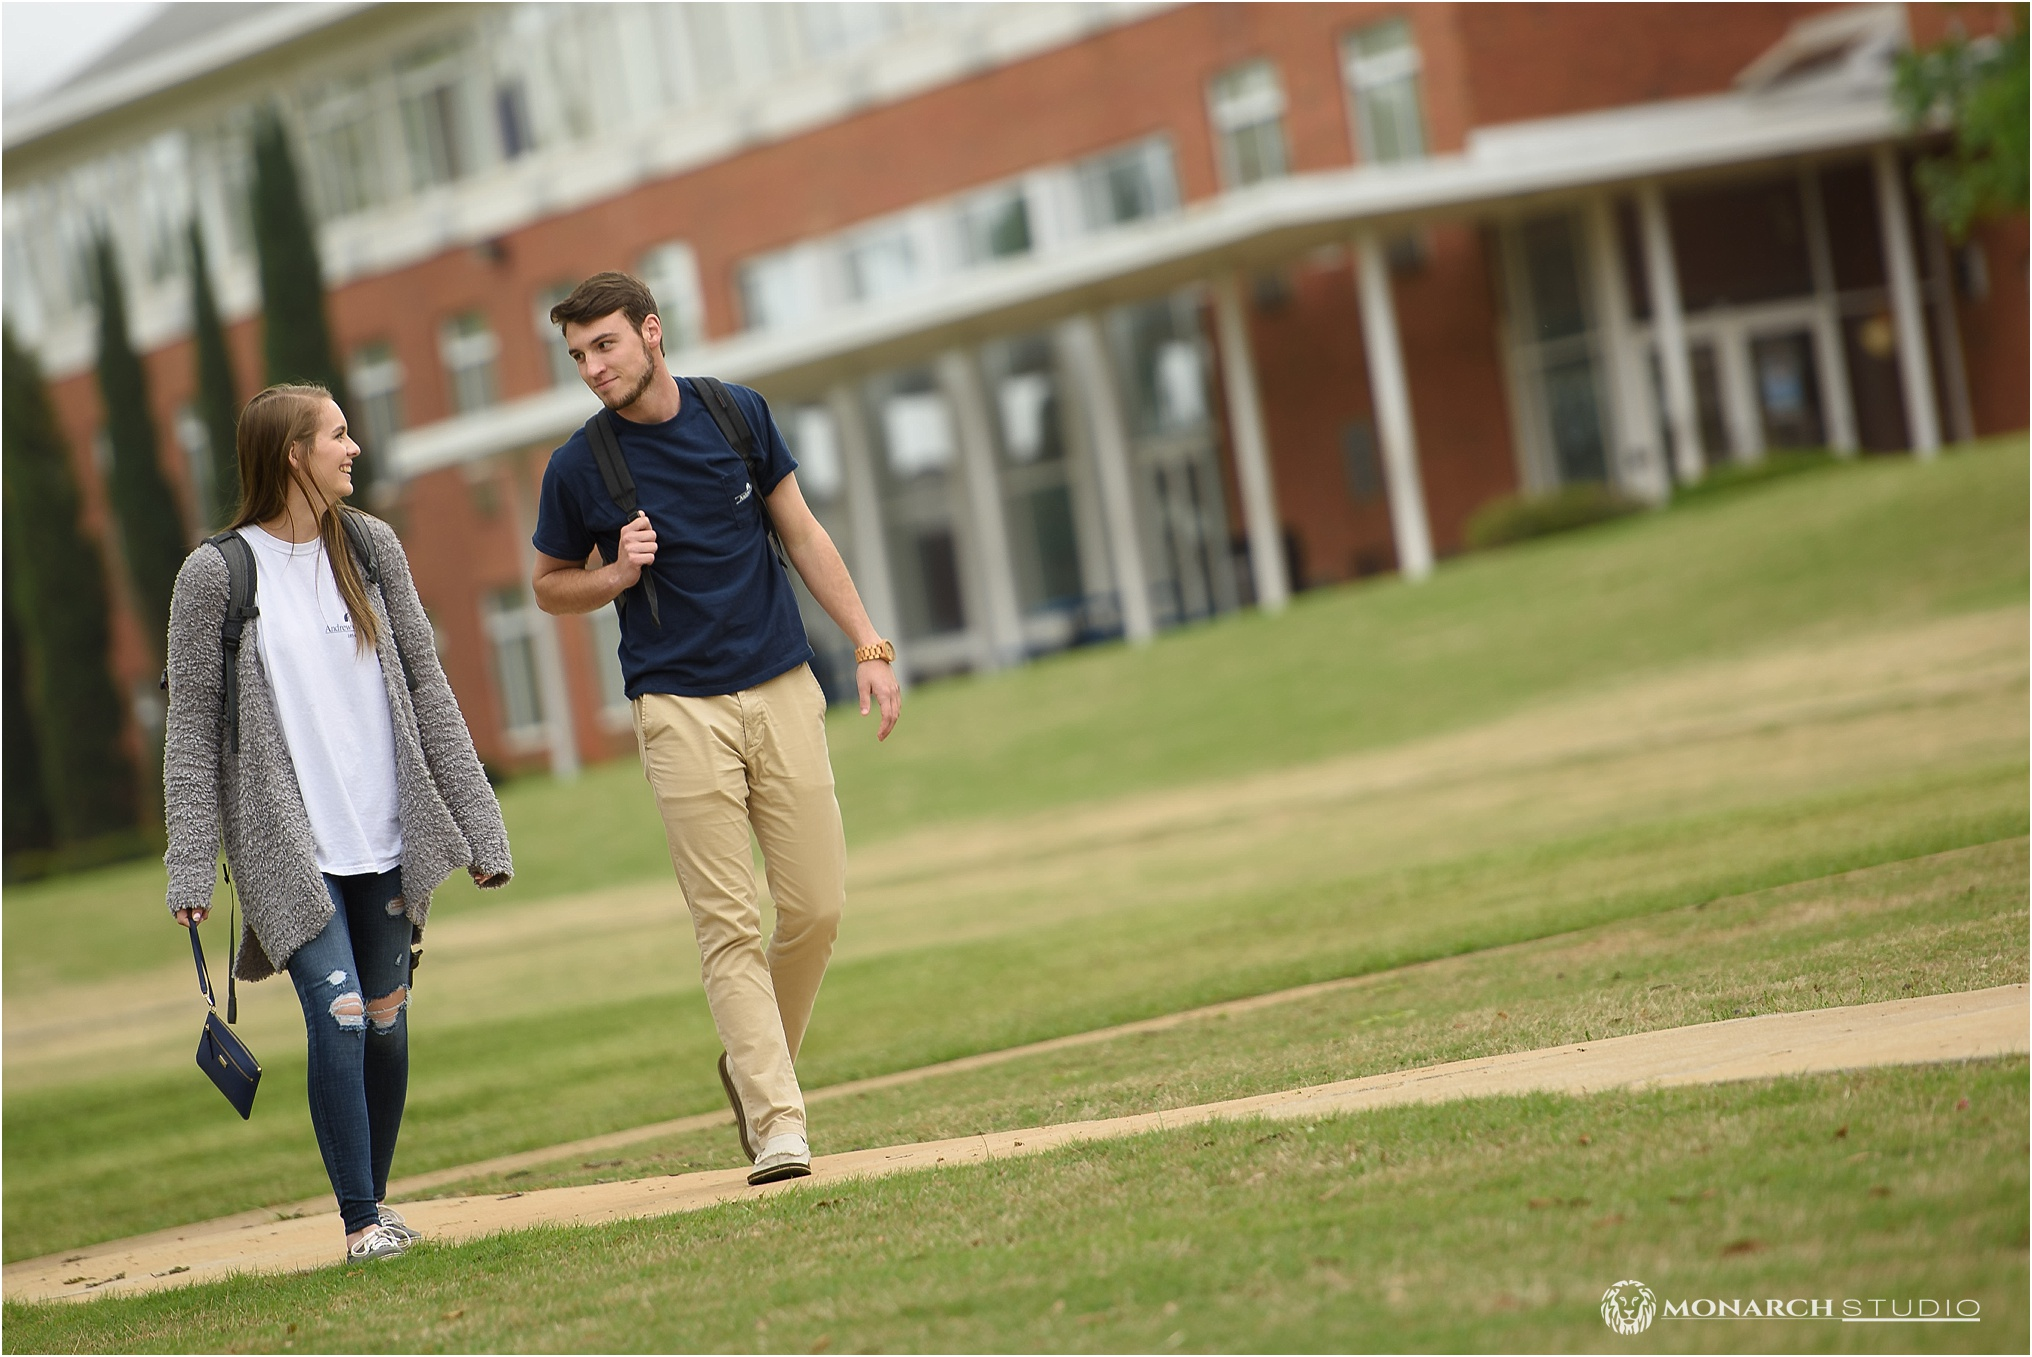 college-lifestyle-photographer-in-georgia-commercial-013.jpg